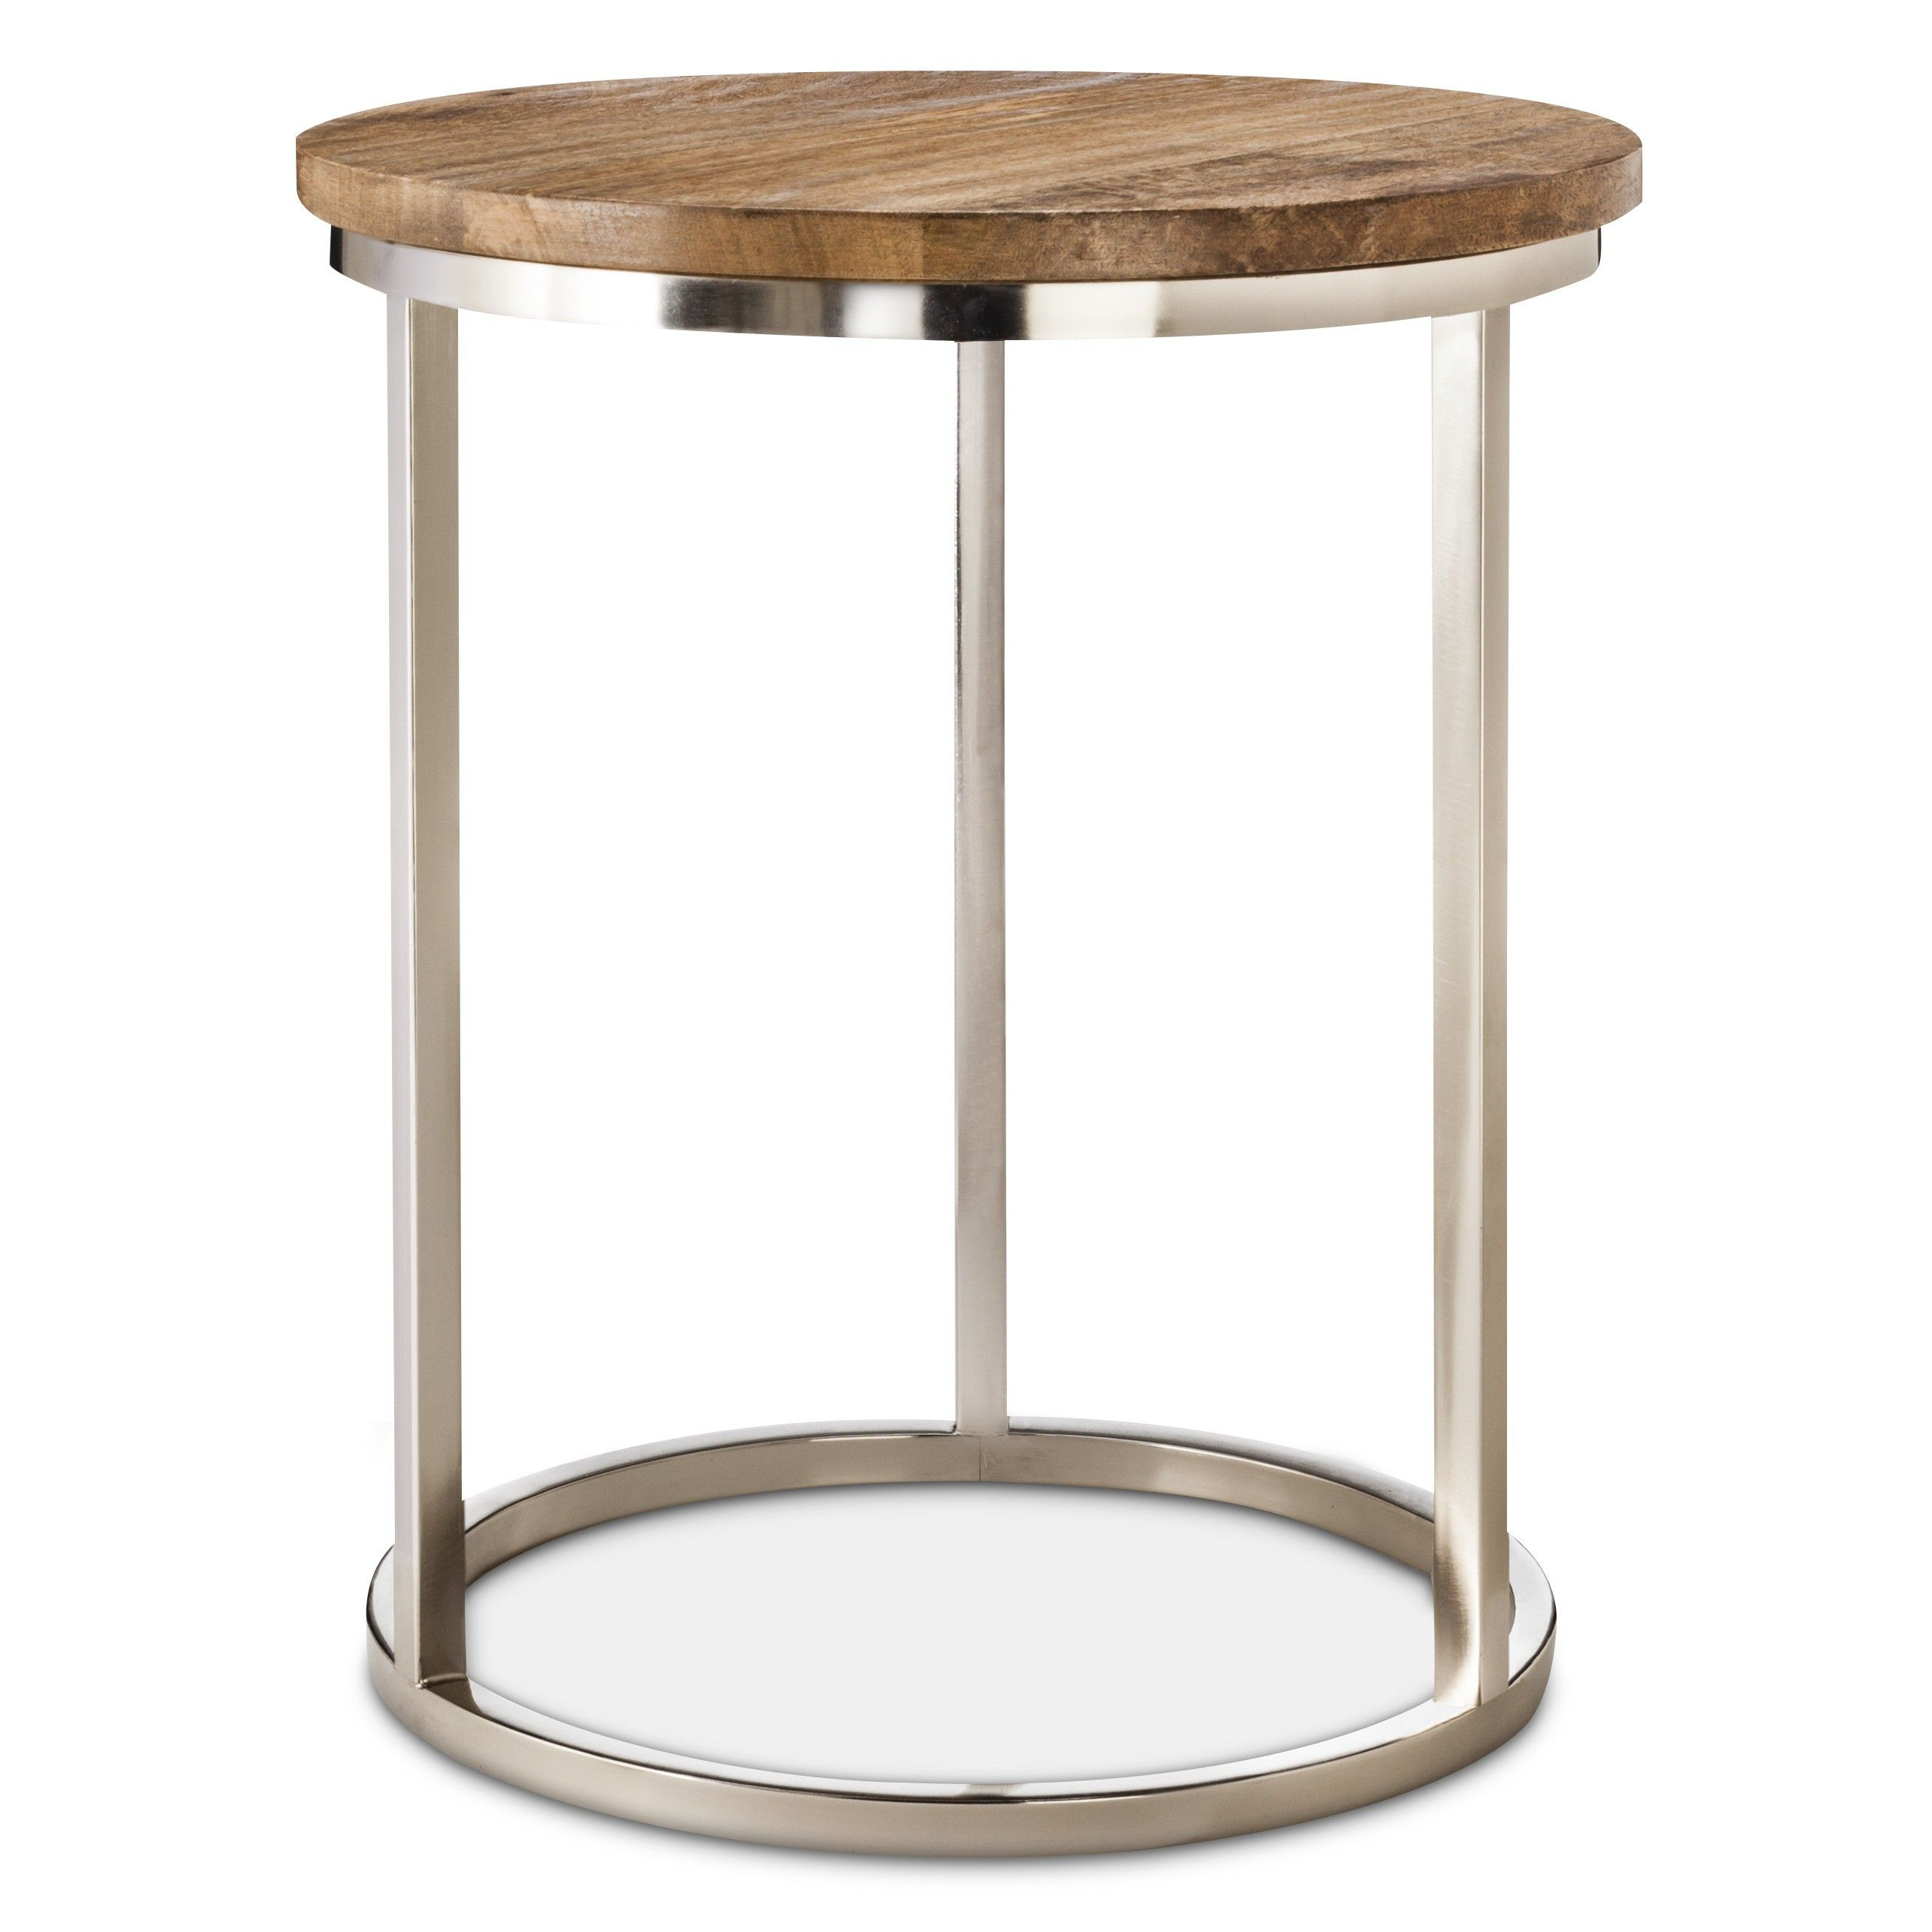 side table for glider threshold metal accent with wood top target home interior accessories black end glass steel furniture legs patio storage rustic tables large square white